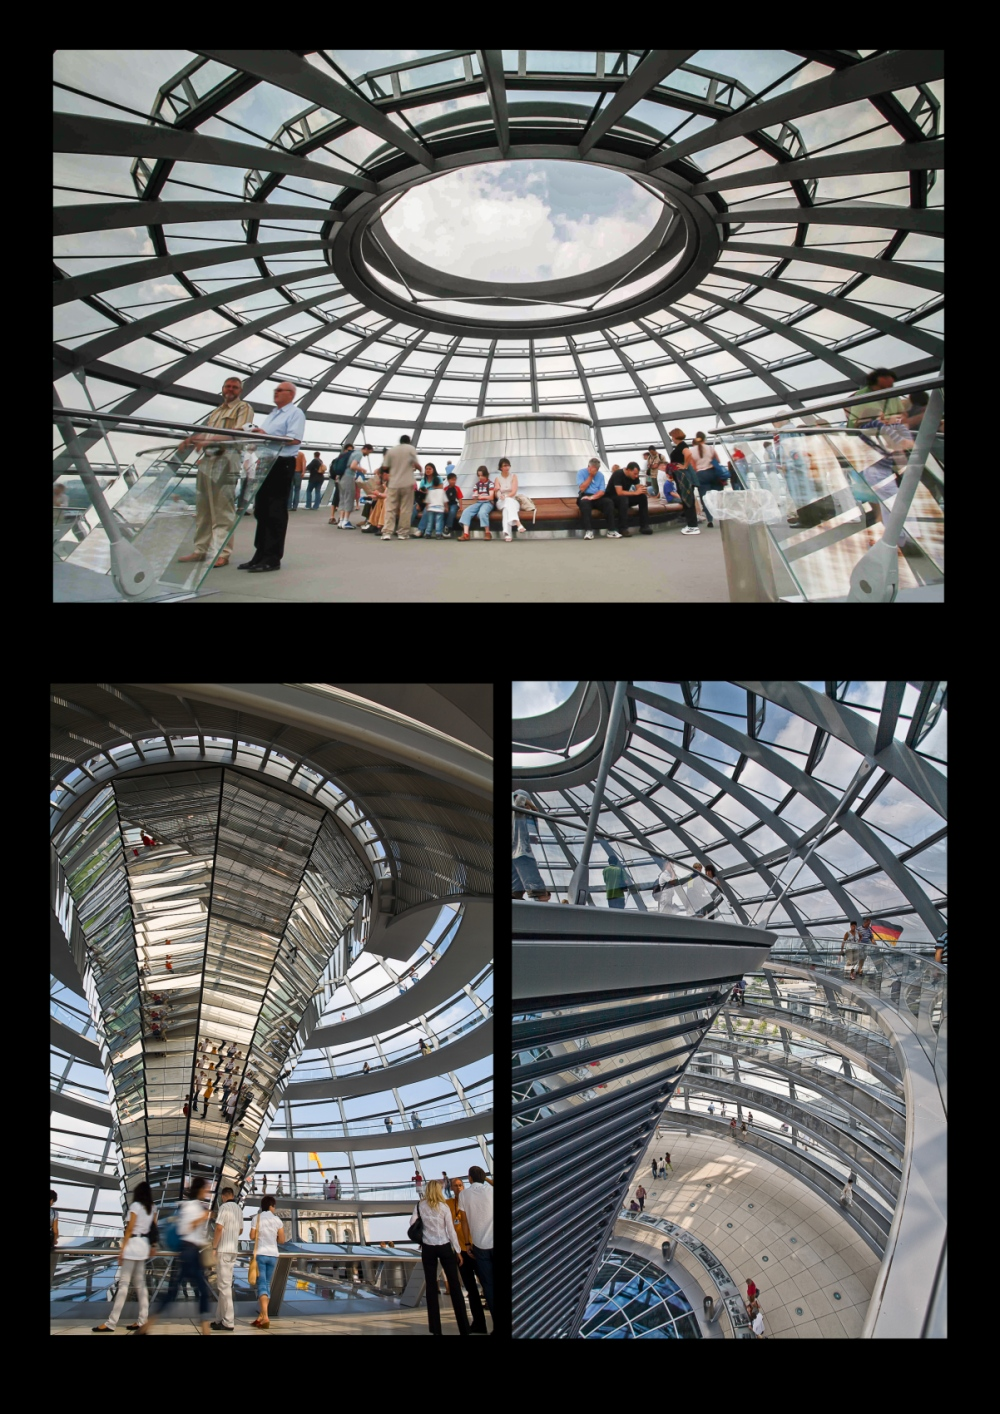 dylancheasleyphotography - Reichstag-Berlin